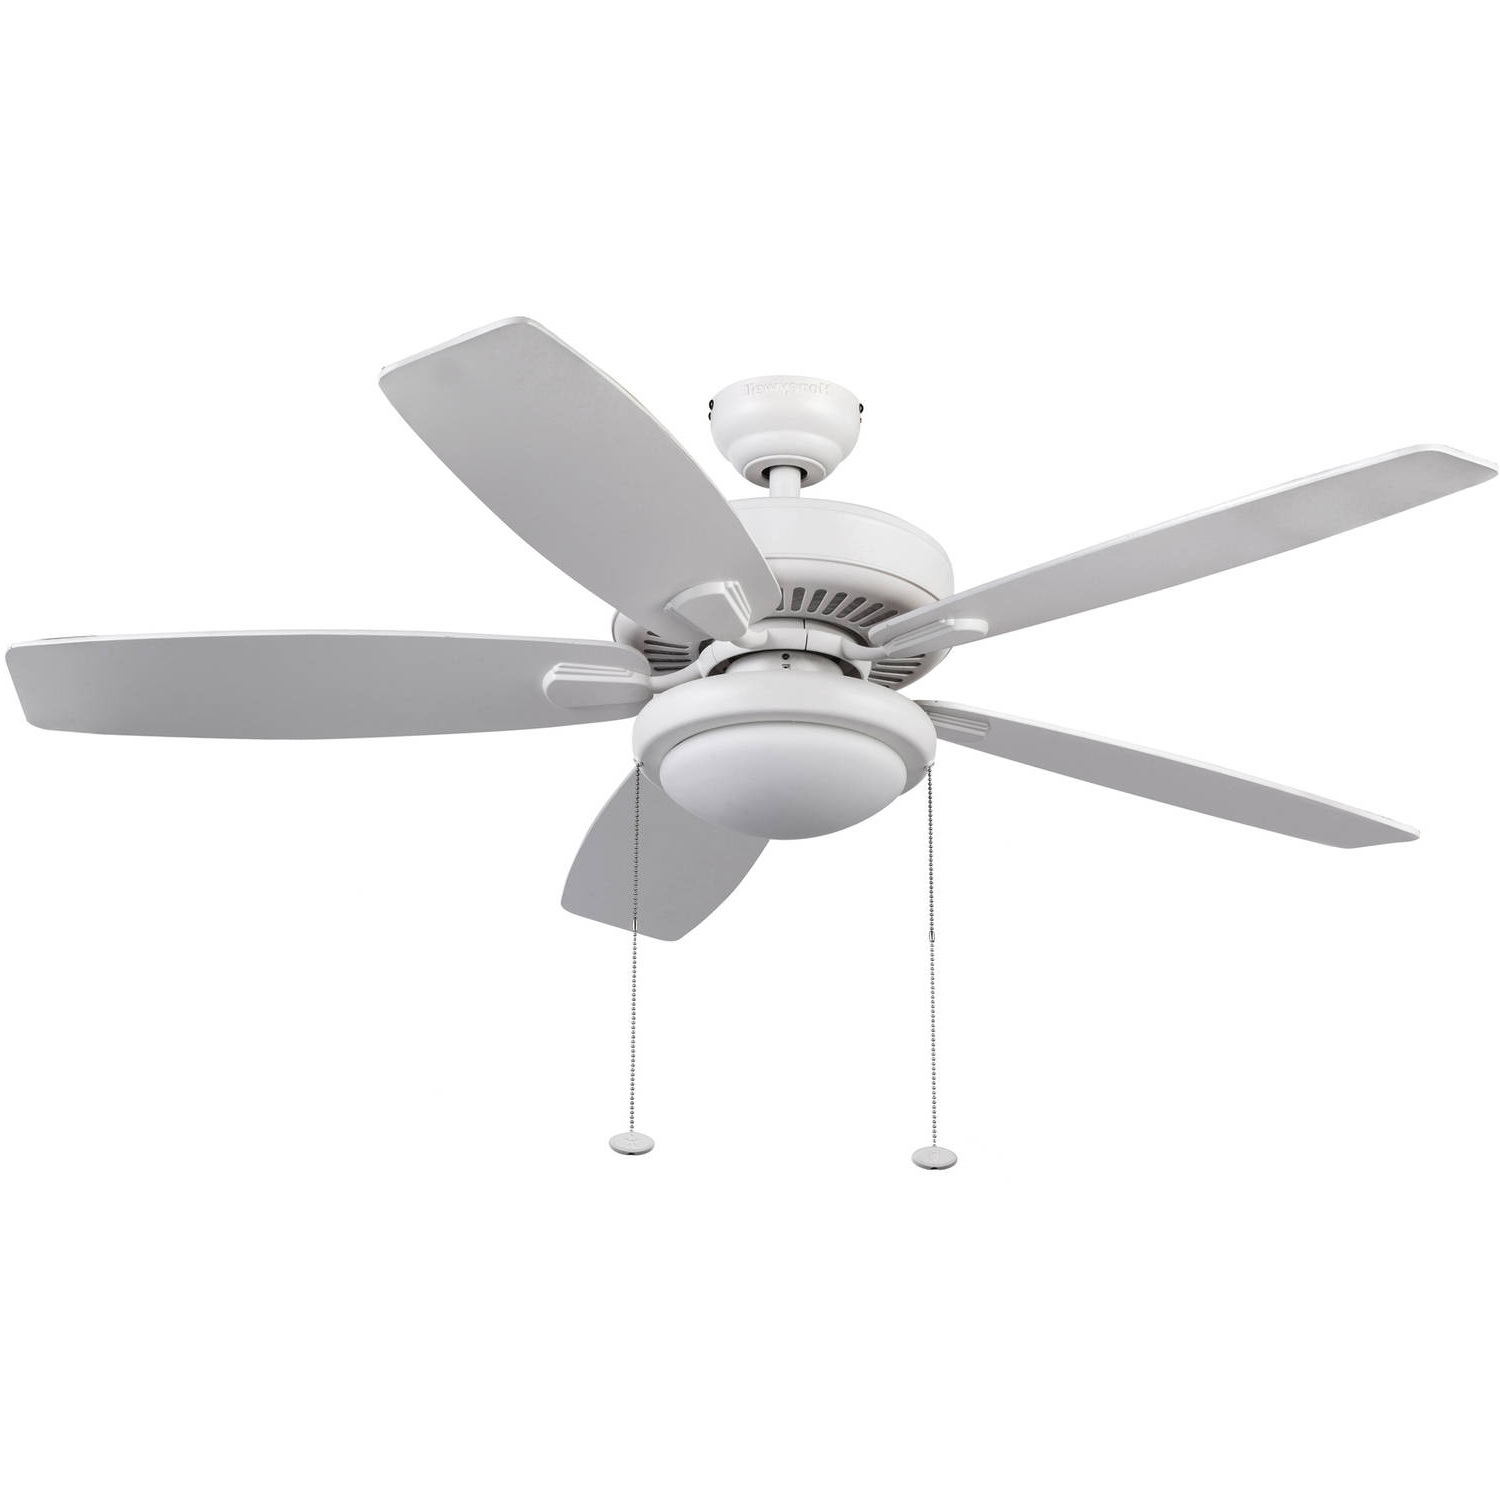 "White Outdoor Ceiling Fans With Lights Intended For Well Known Honeywell Blufton 52"" White Outdoor Ceiling Fan – Walmart (View 7 of 20)"